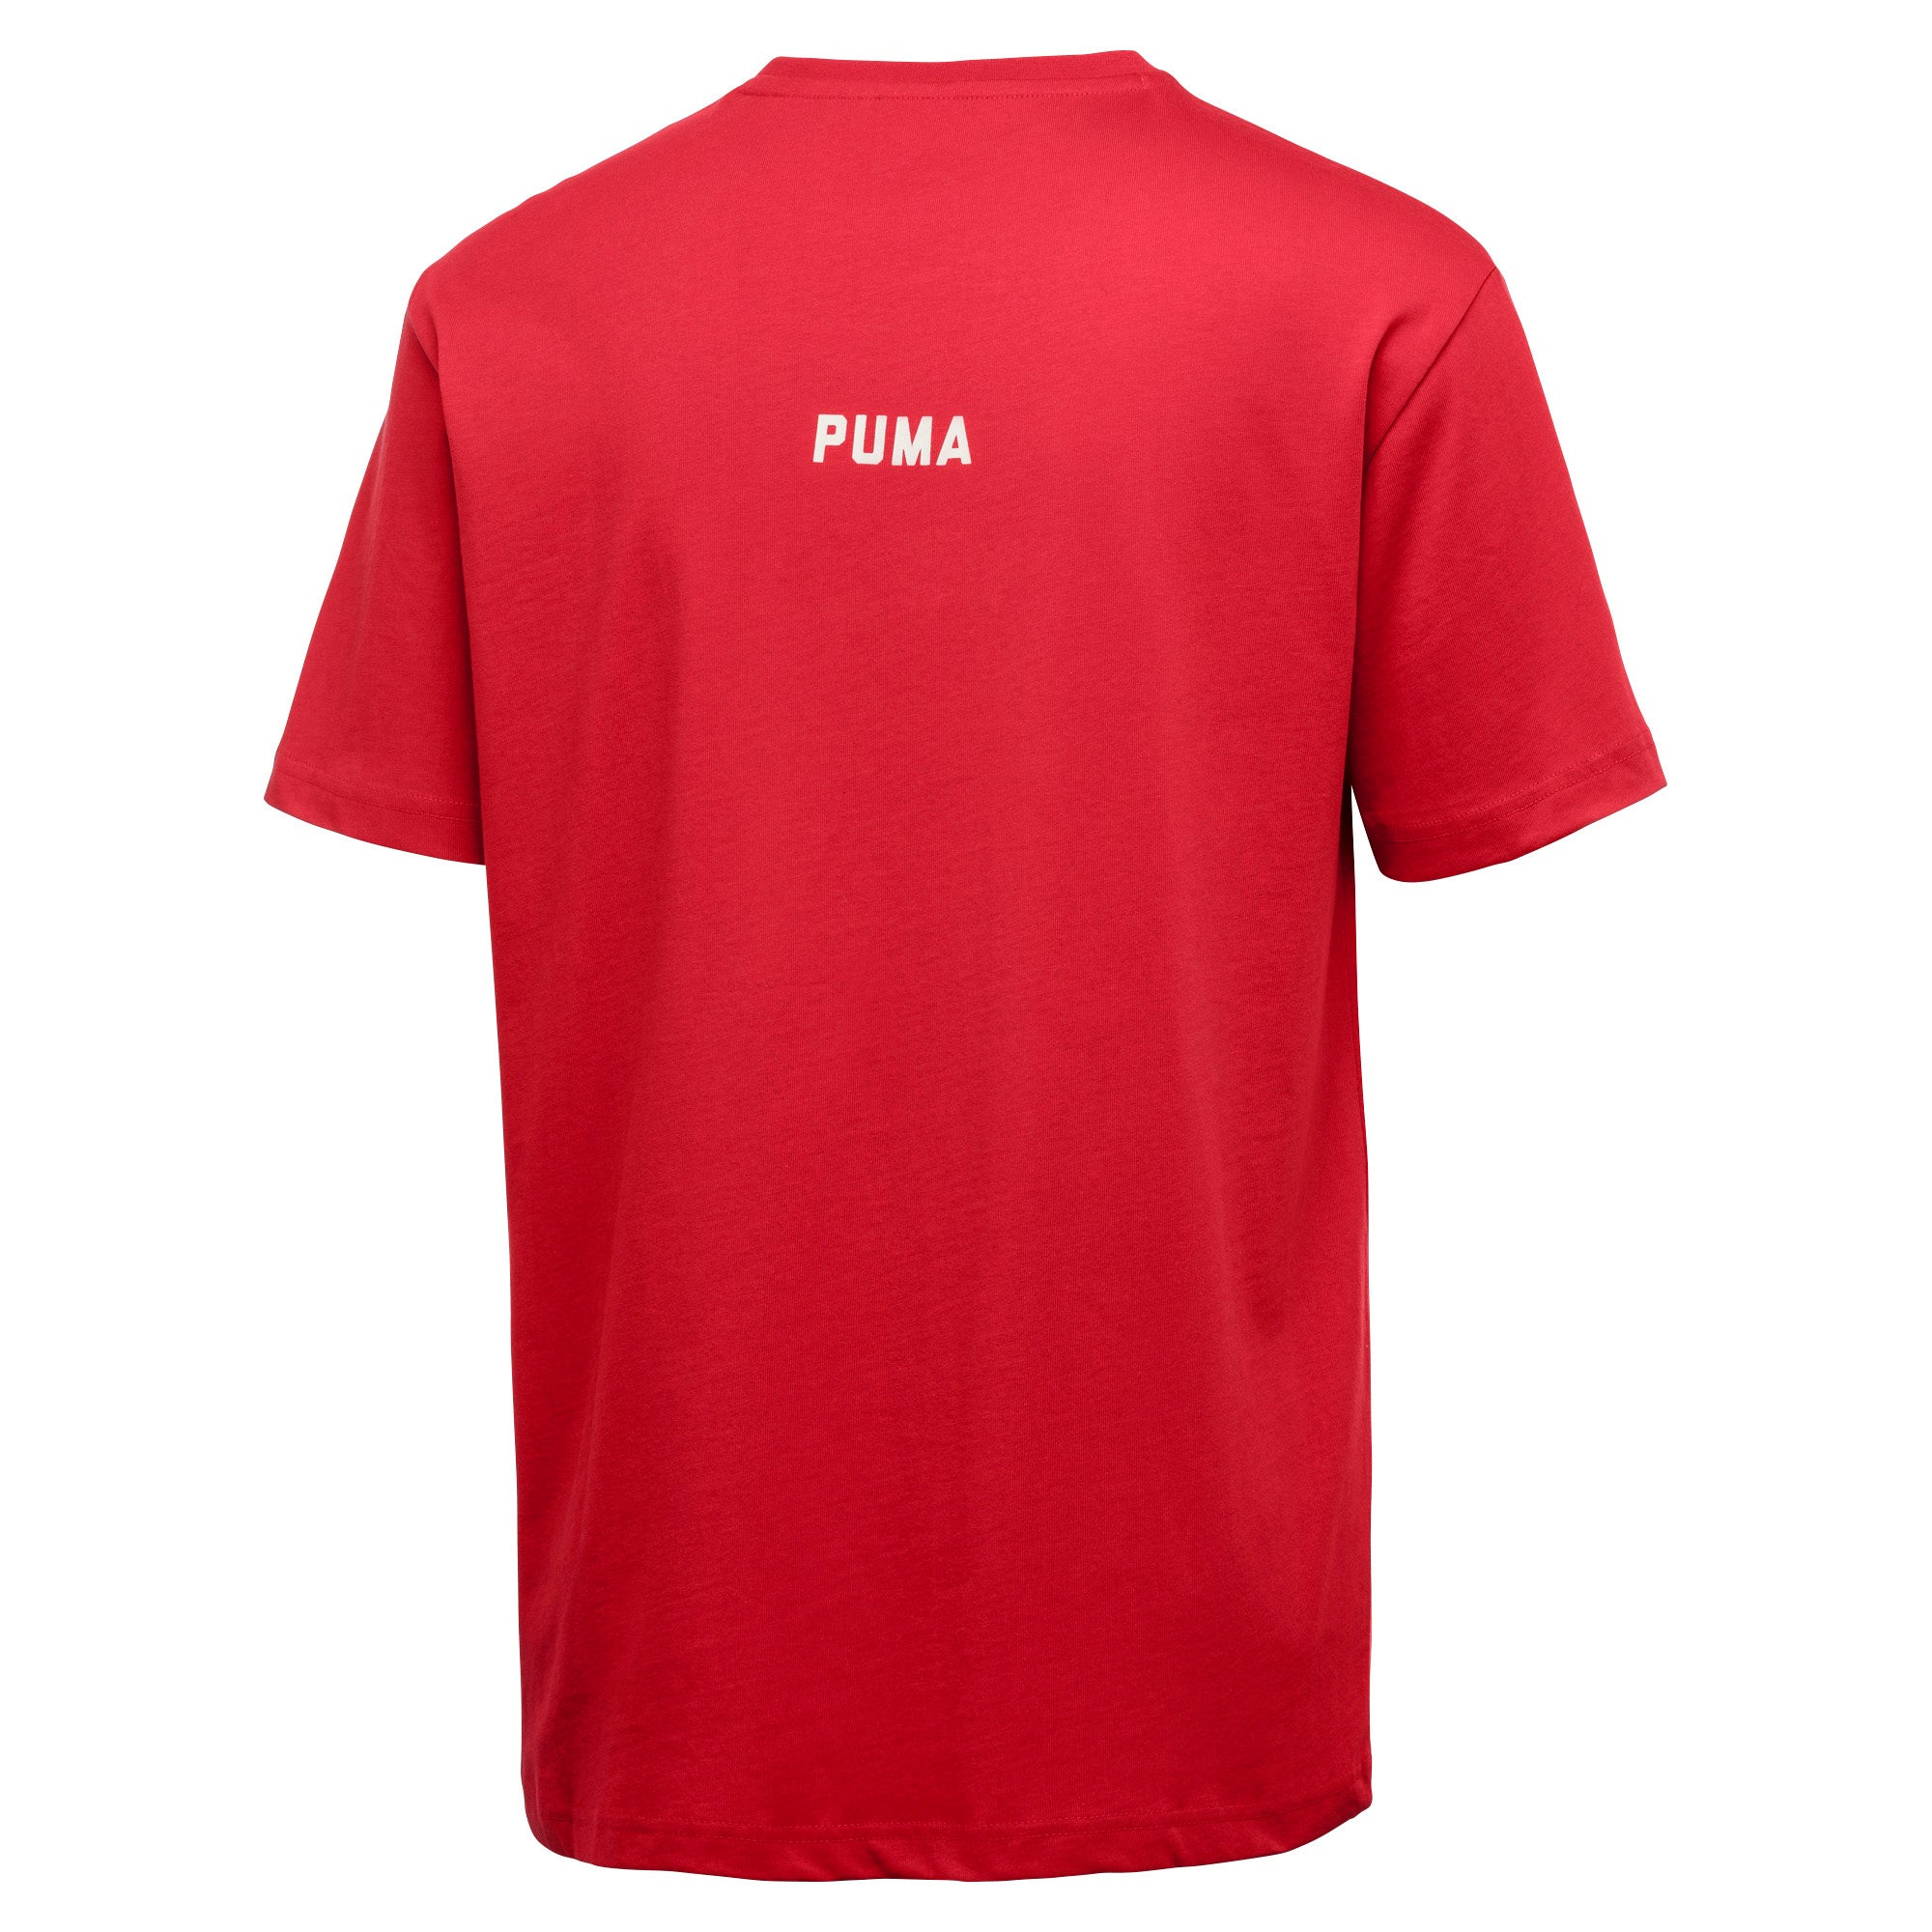 PUMA | Outlaw Moscow Tee Ribbon Red